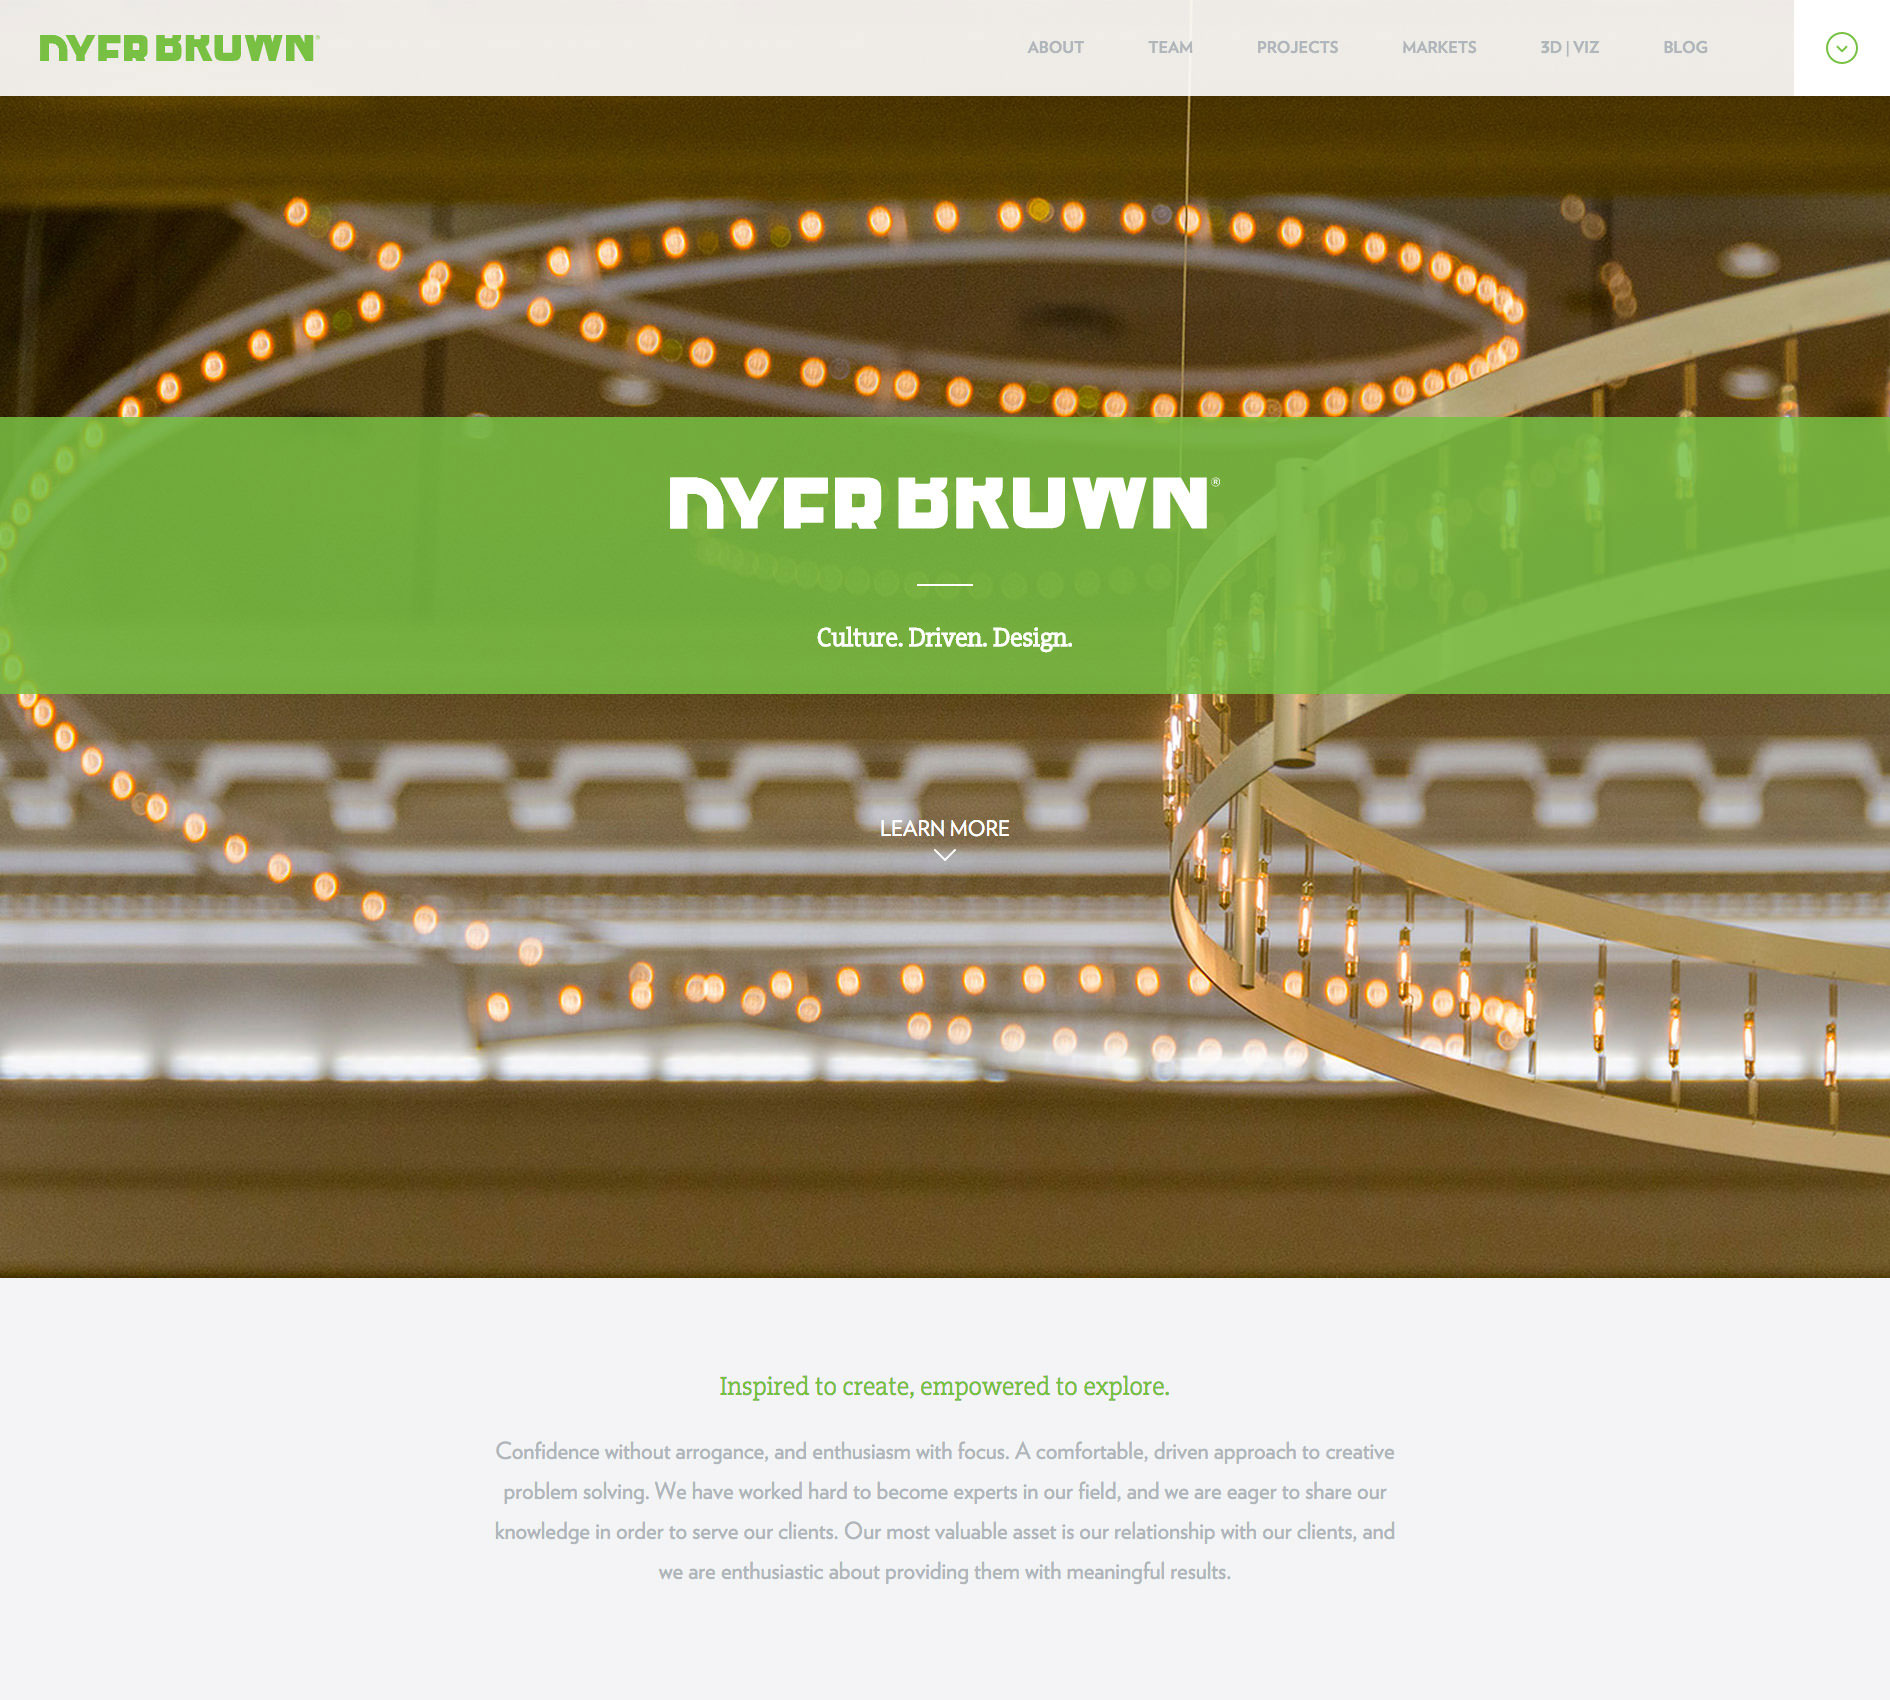 MilesHerndon_DyerBrown_Website